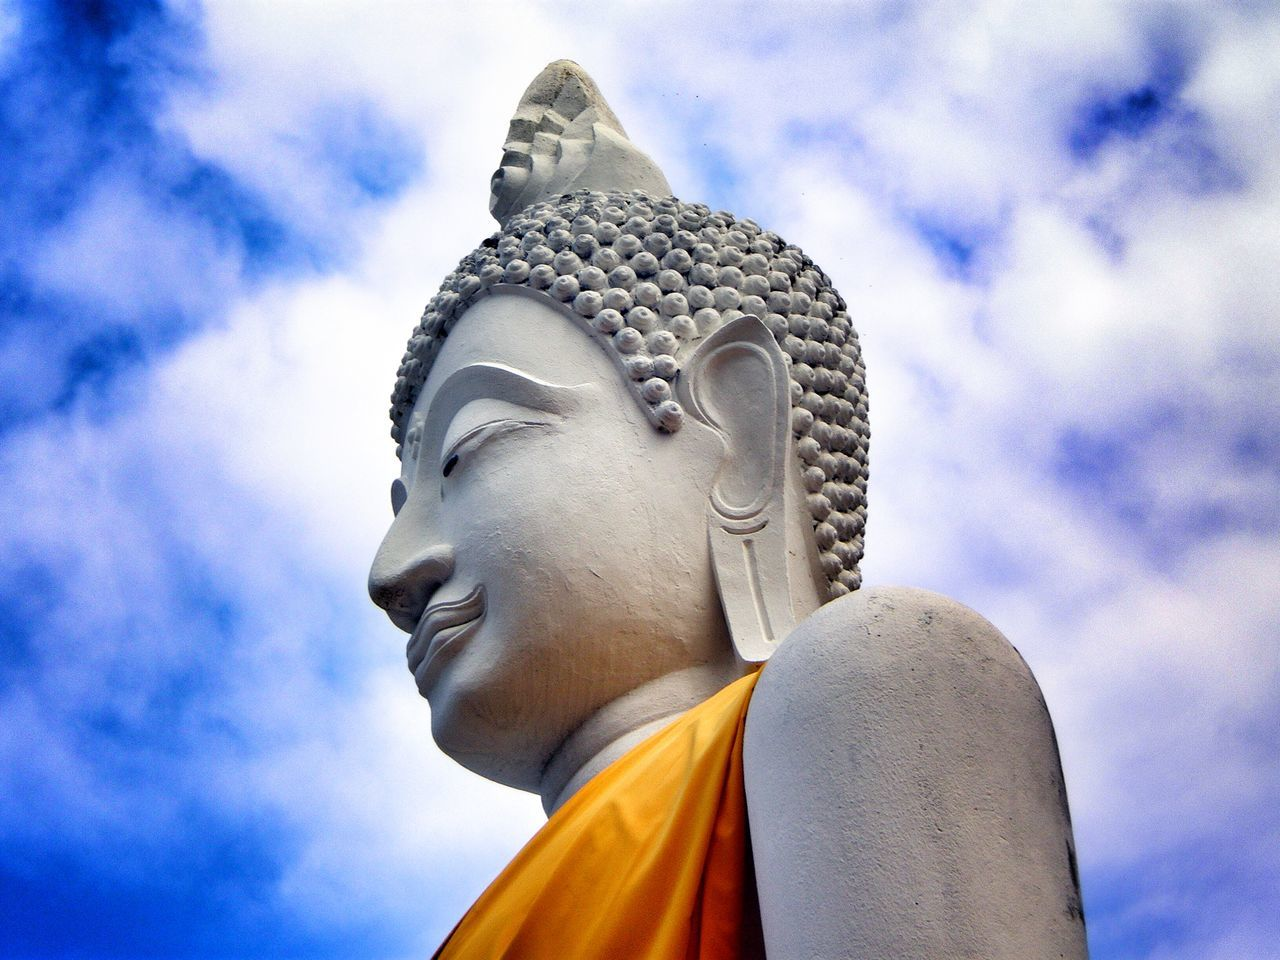 Thailand Buddha Clouds And Sky Sky And Clouds Sky Streamzoofamily EyeEm Best Shots Travel Photography Traveling Seeing The Sights Wat Tha Ton Northern Thailand Spotted In Thailand Blue Wave Buddhism Close-up High Angle View Tourism Religion Temple Cloud - Sky Blue